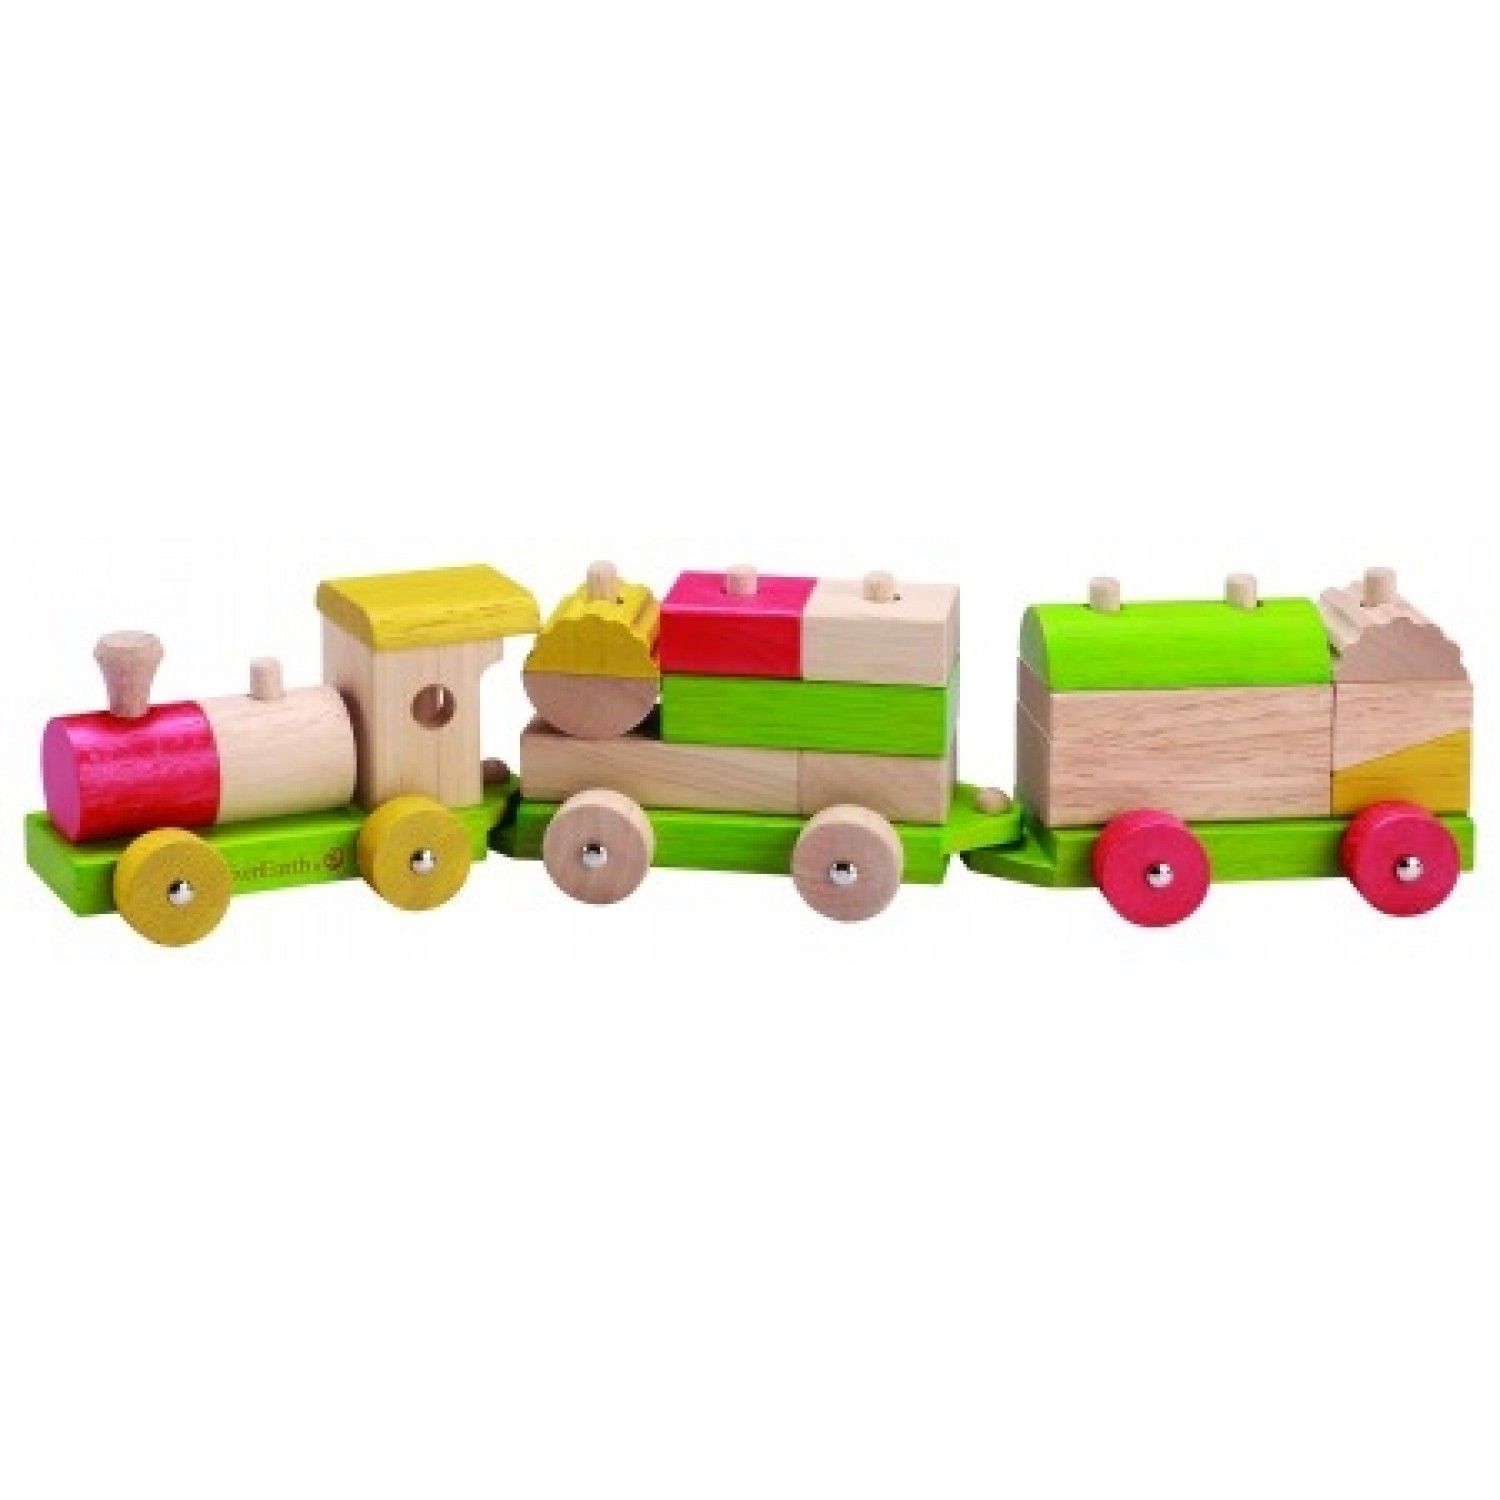 EverEarth Wooden Train – coordination training toy